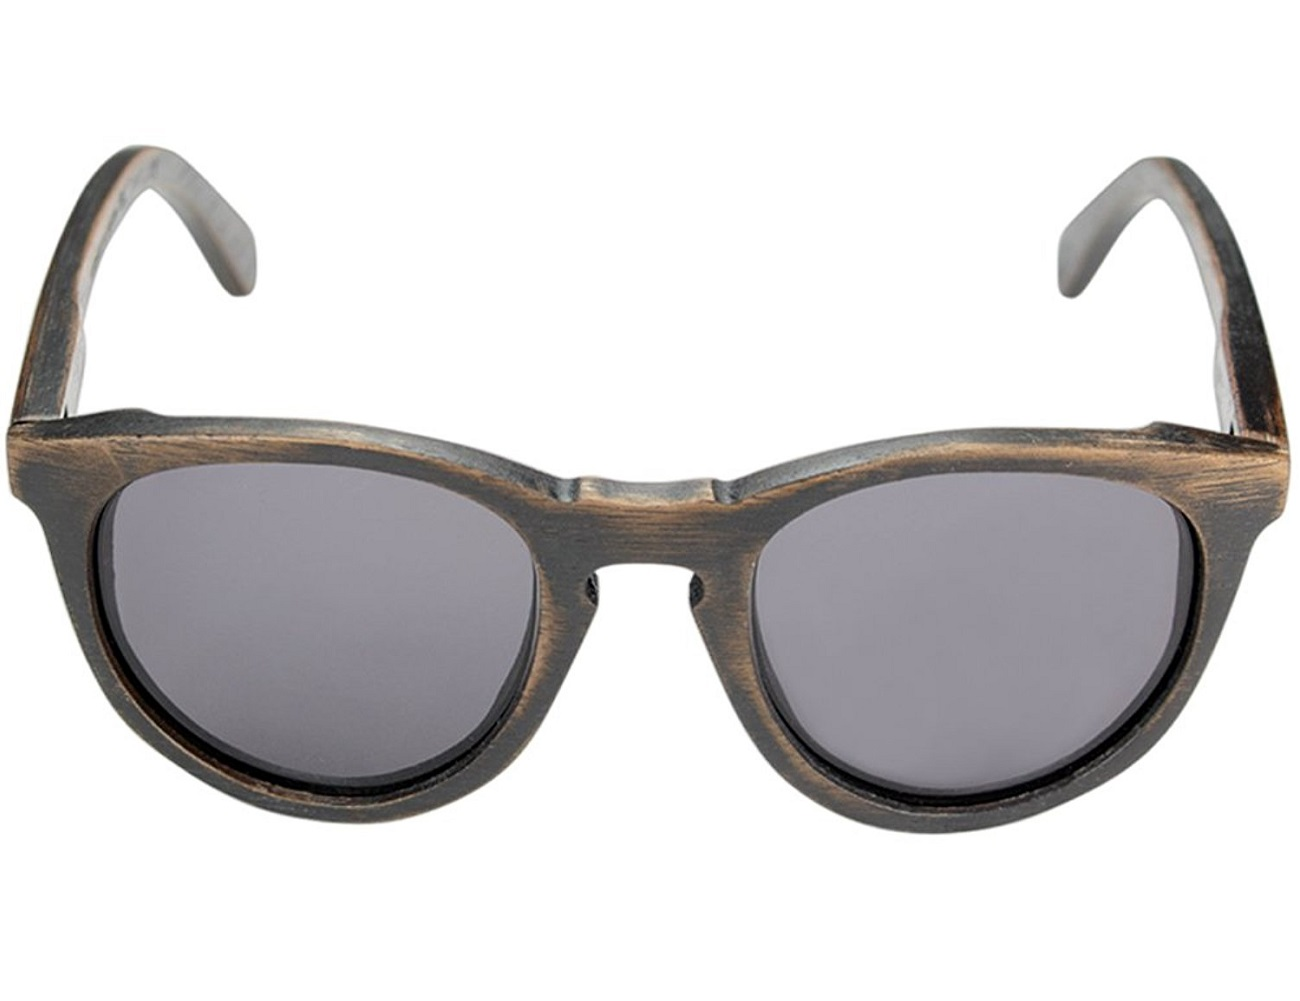 Belmont+Dark+Walnut+And+Grey+Wooden+Sunglasses